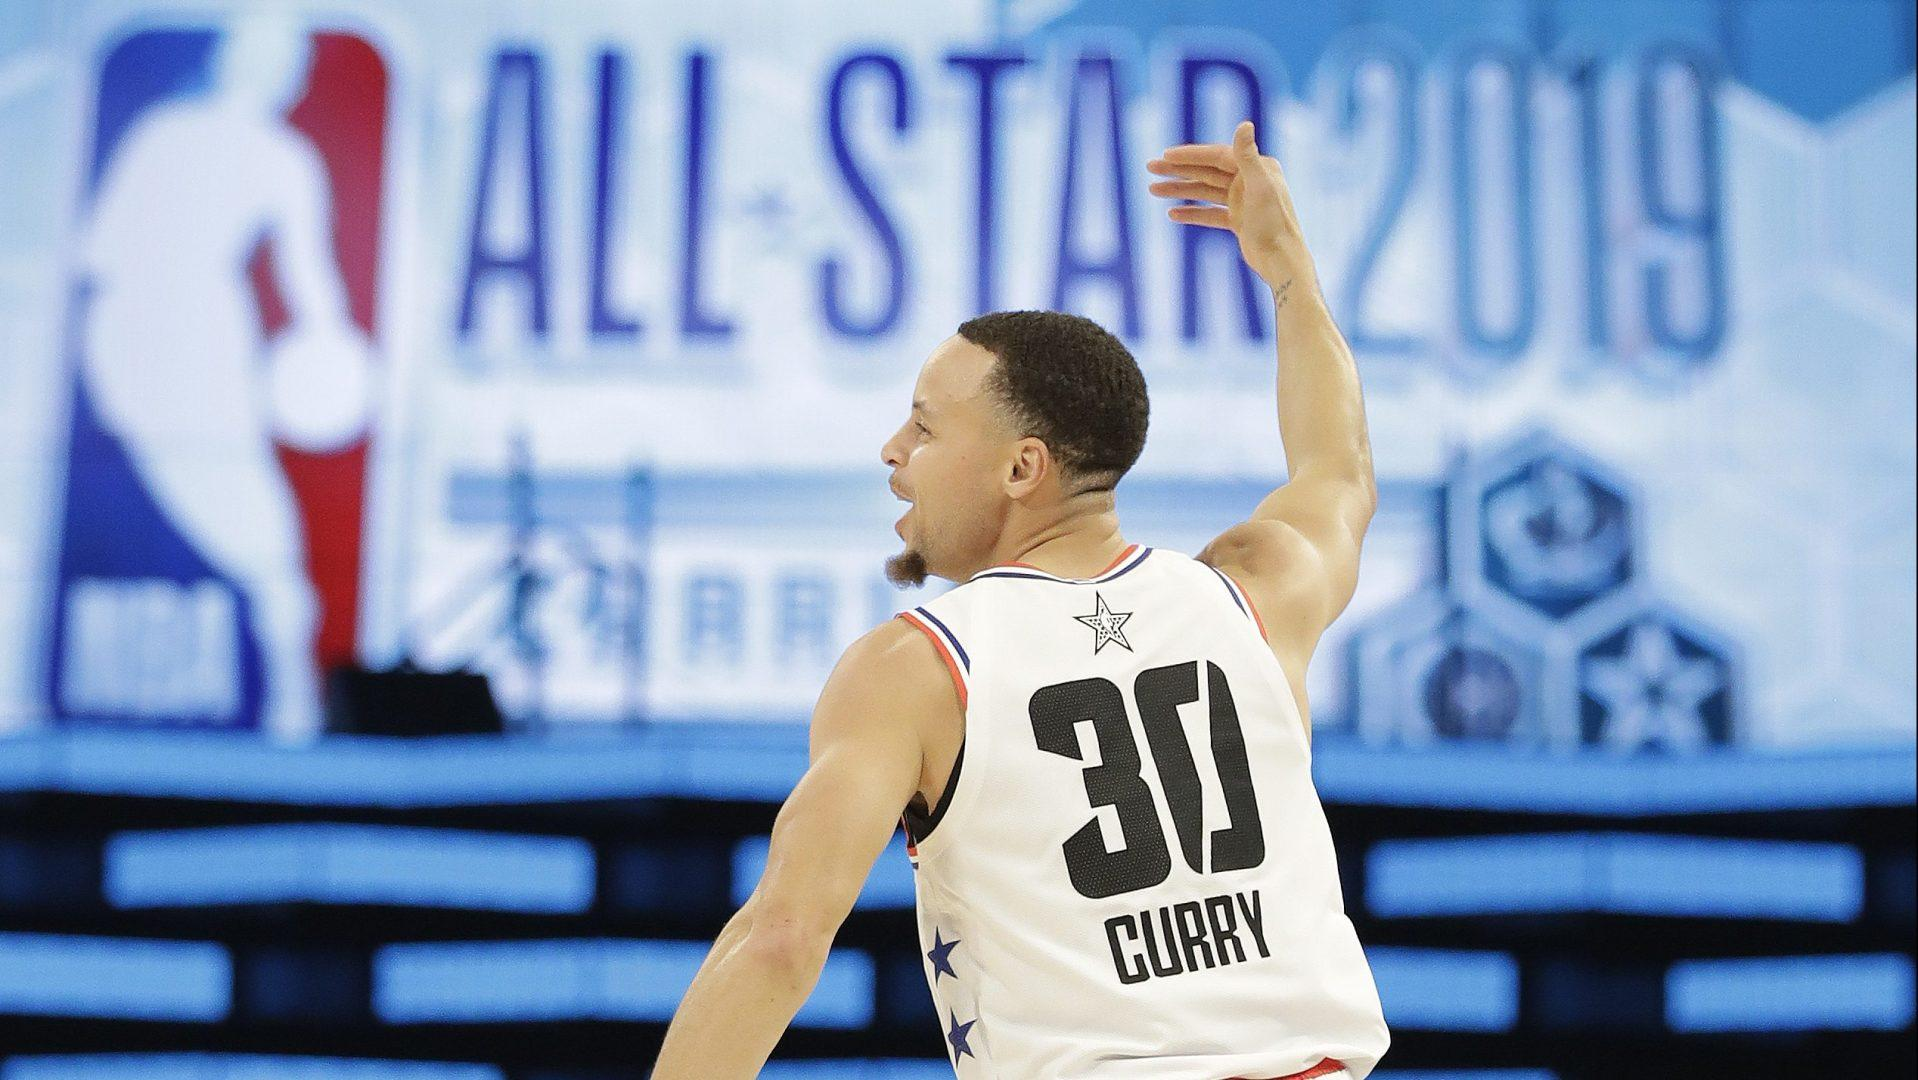 Stephen Curry gets four-point play after Klay Thompson foul, Curry does some taunting